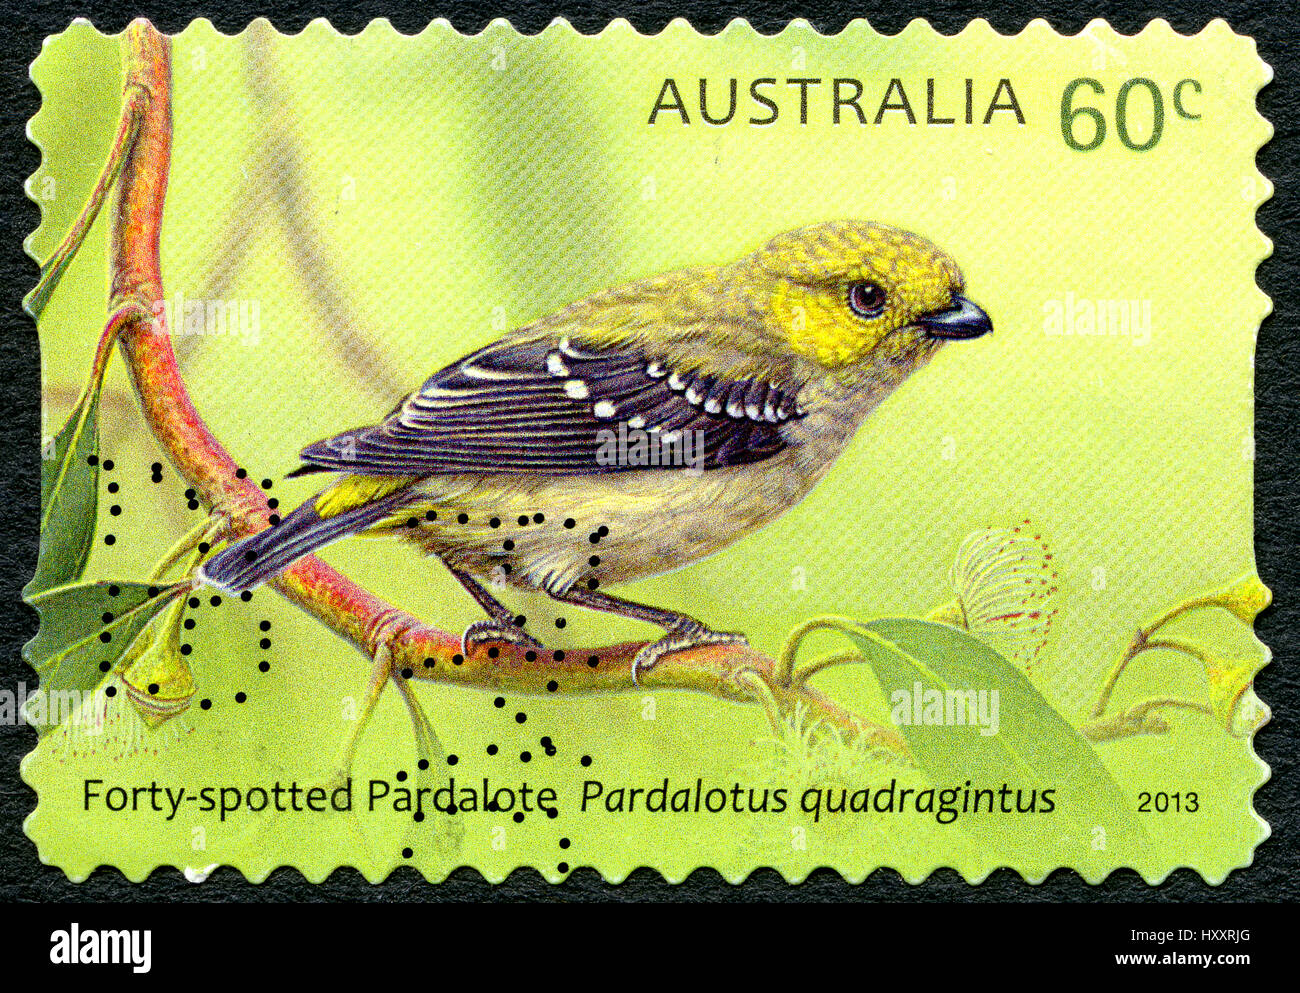 AUSTRALIA - CIRCA 2013: A used postage stamp from Australia, depicting an illustration of a Forty-Spotted Pardalote - Stock Image